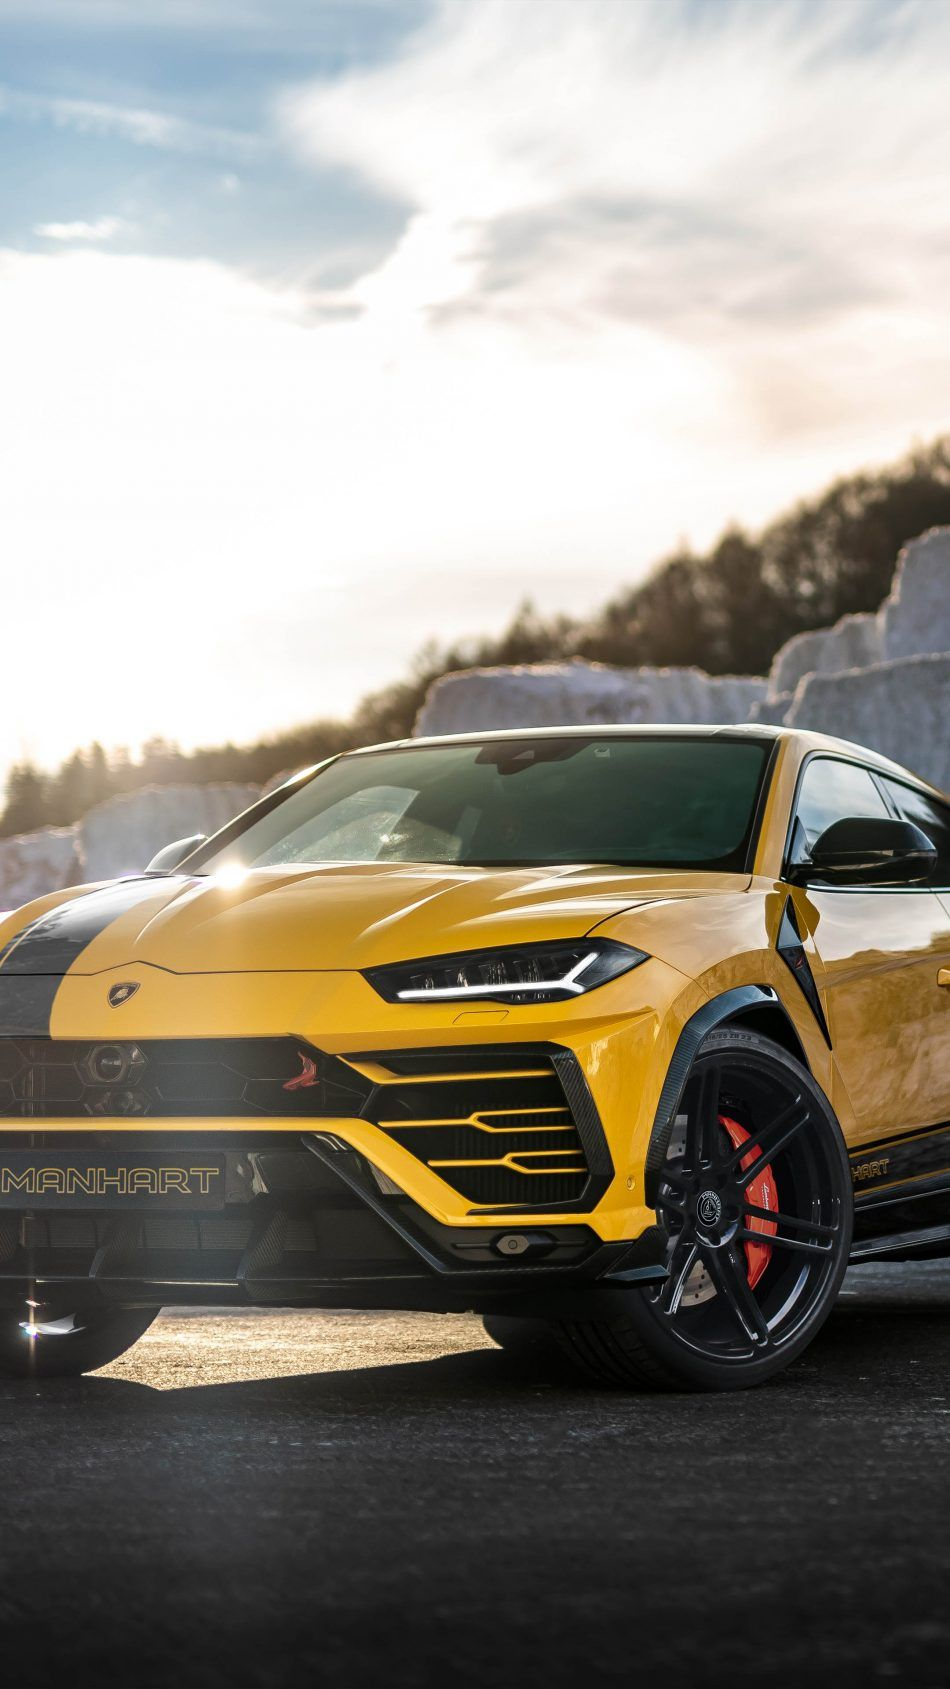 Manhart Lamborghini Urus 800 2019 With Images Lamborghini